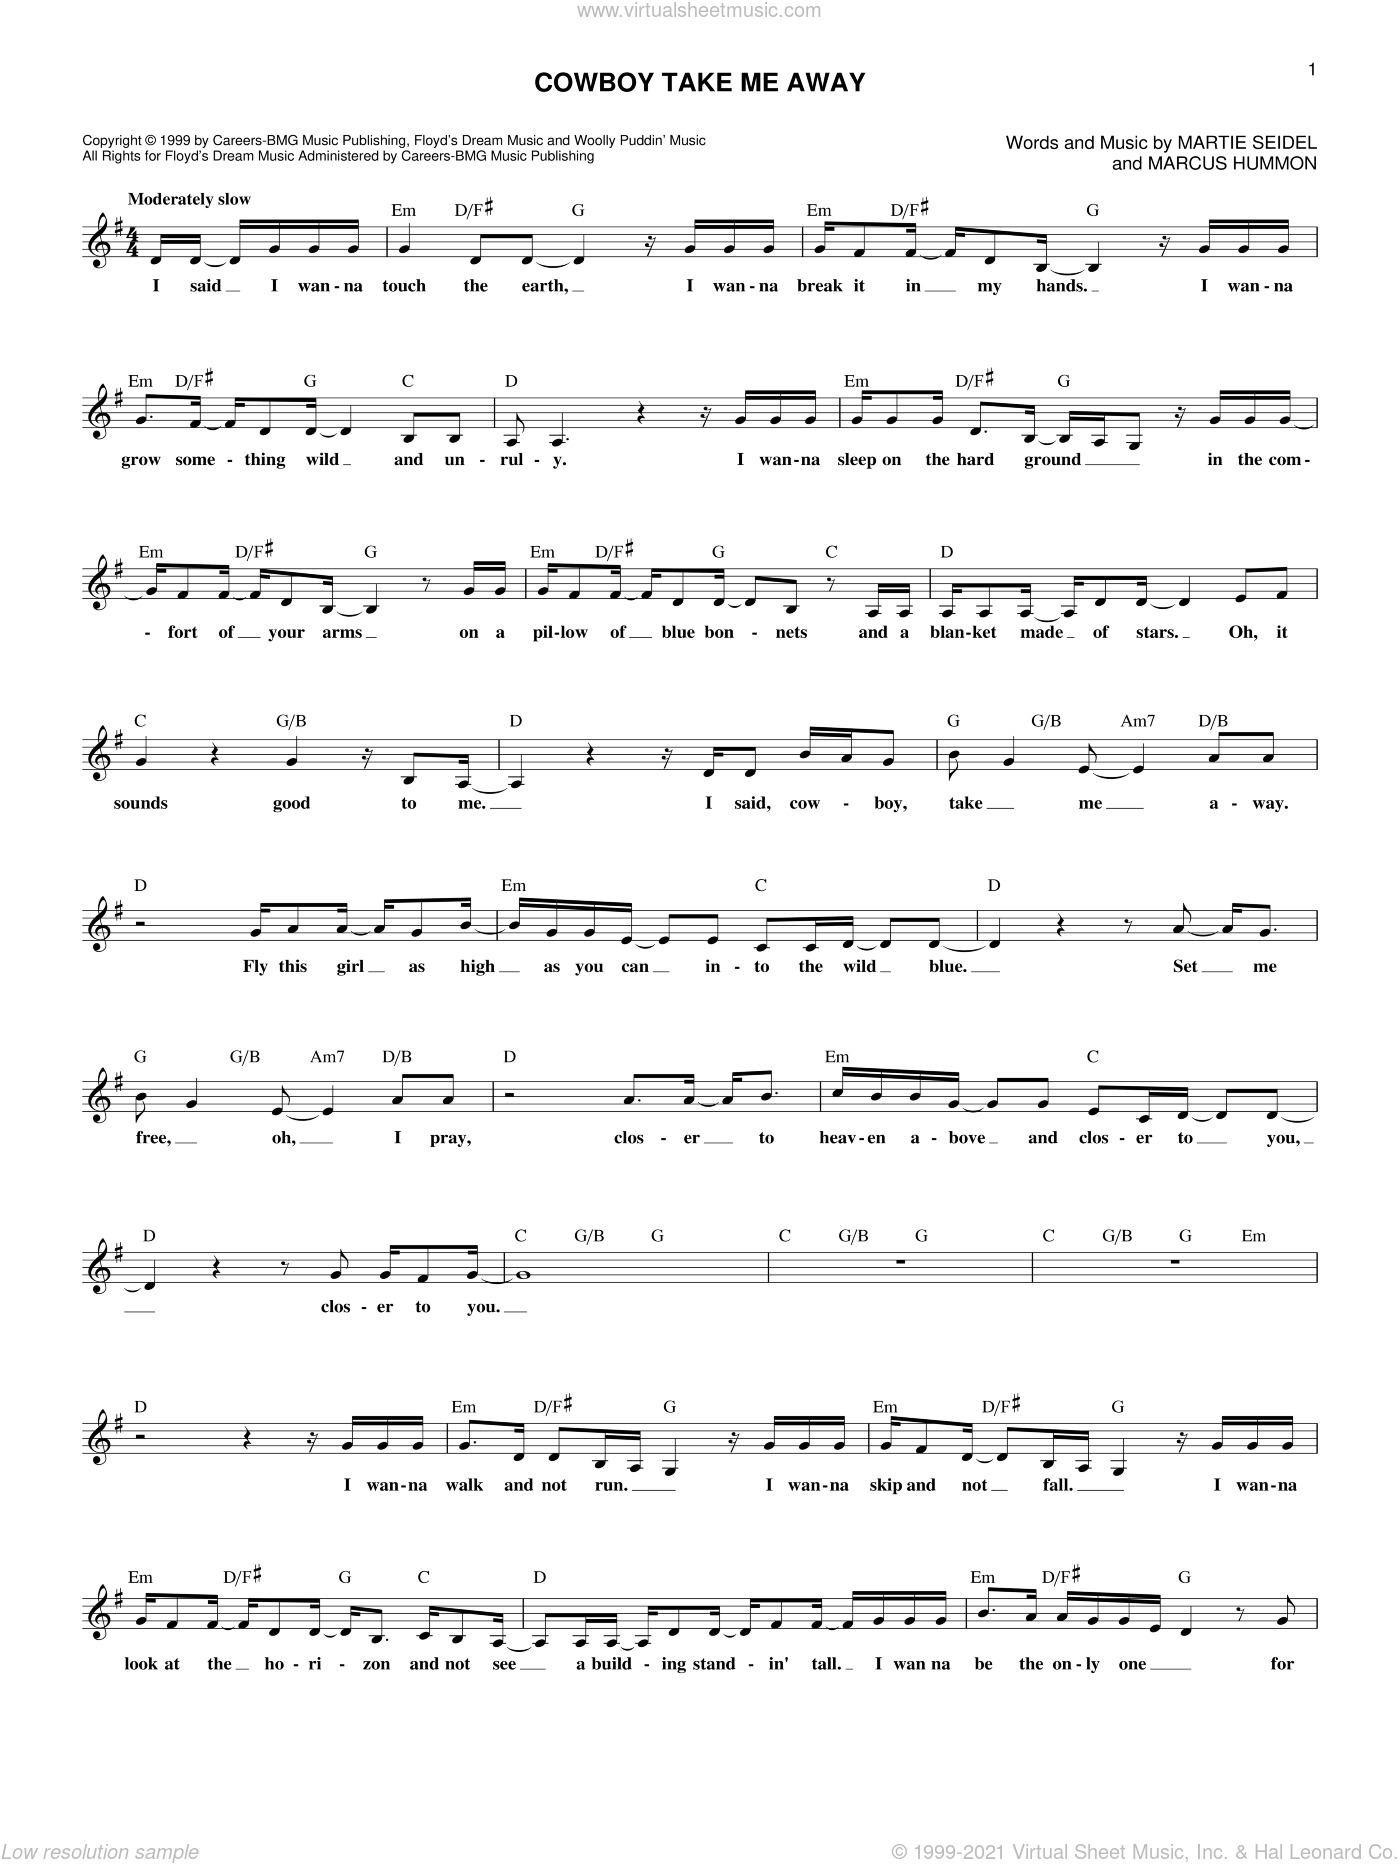 Cowboy Take Me Away sheet music for voice and other instruments (fake book) by Martie Seidel